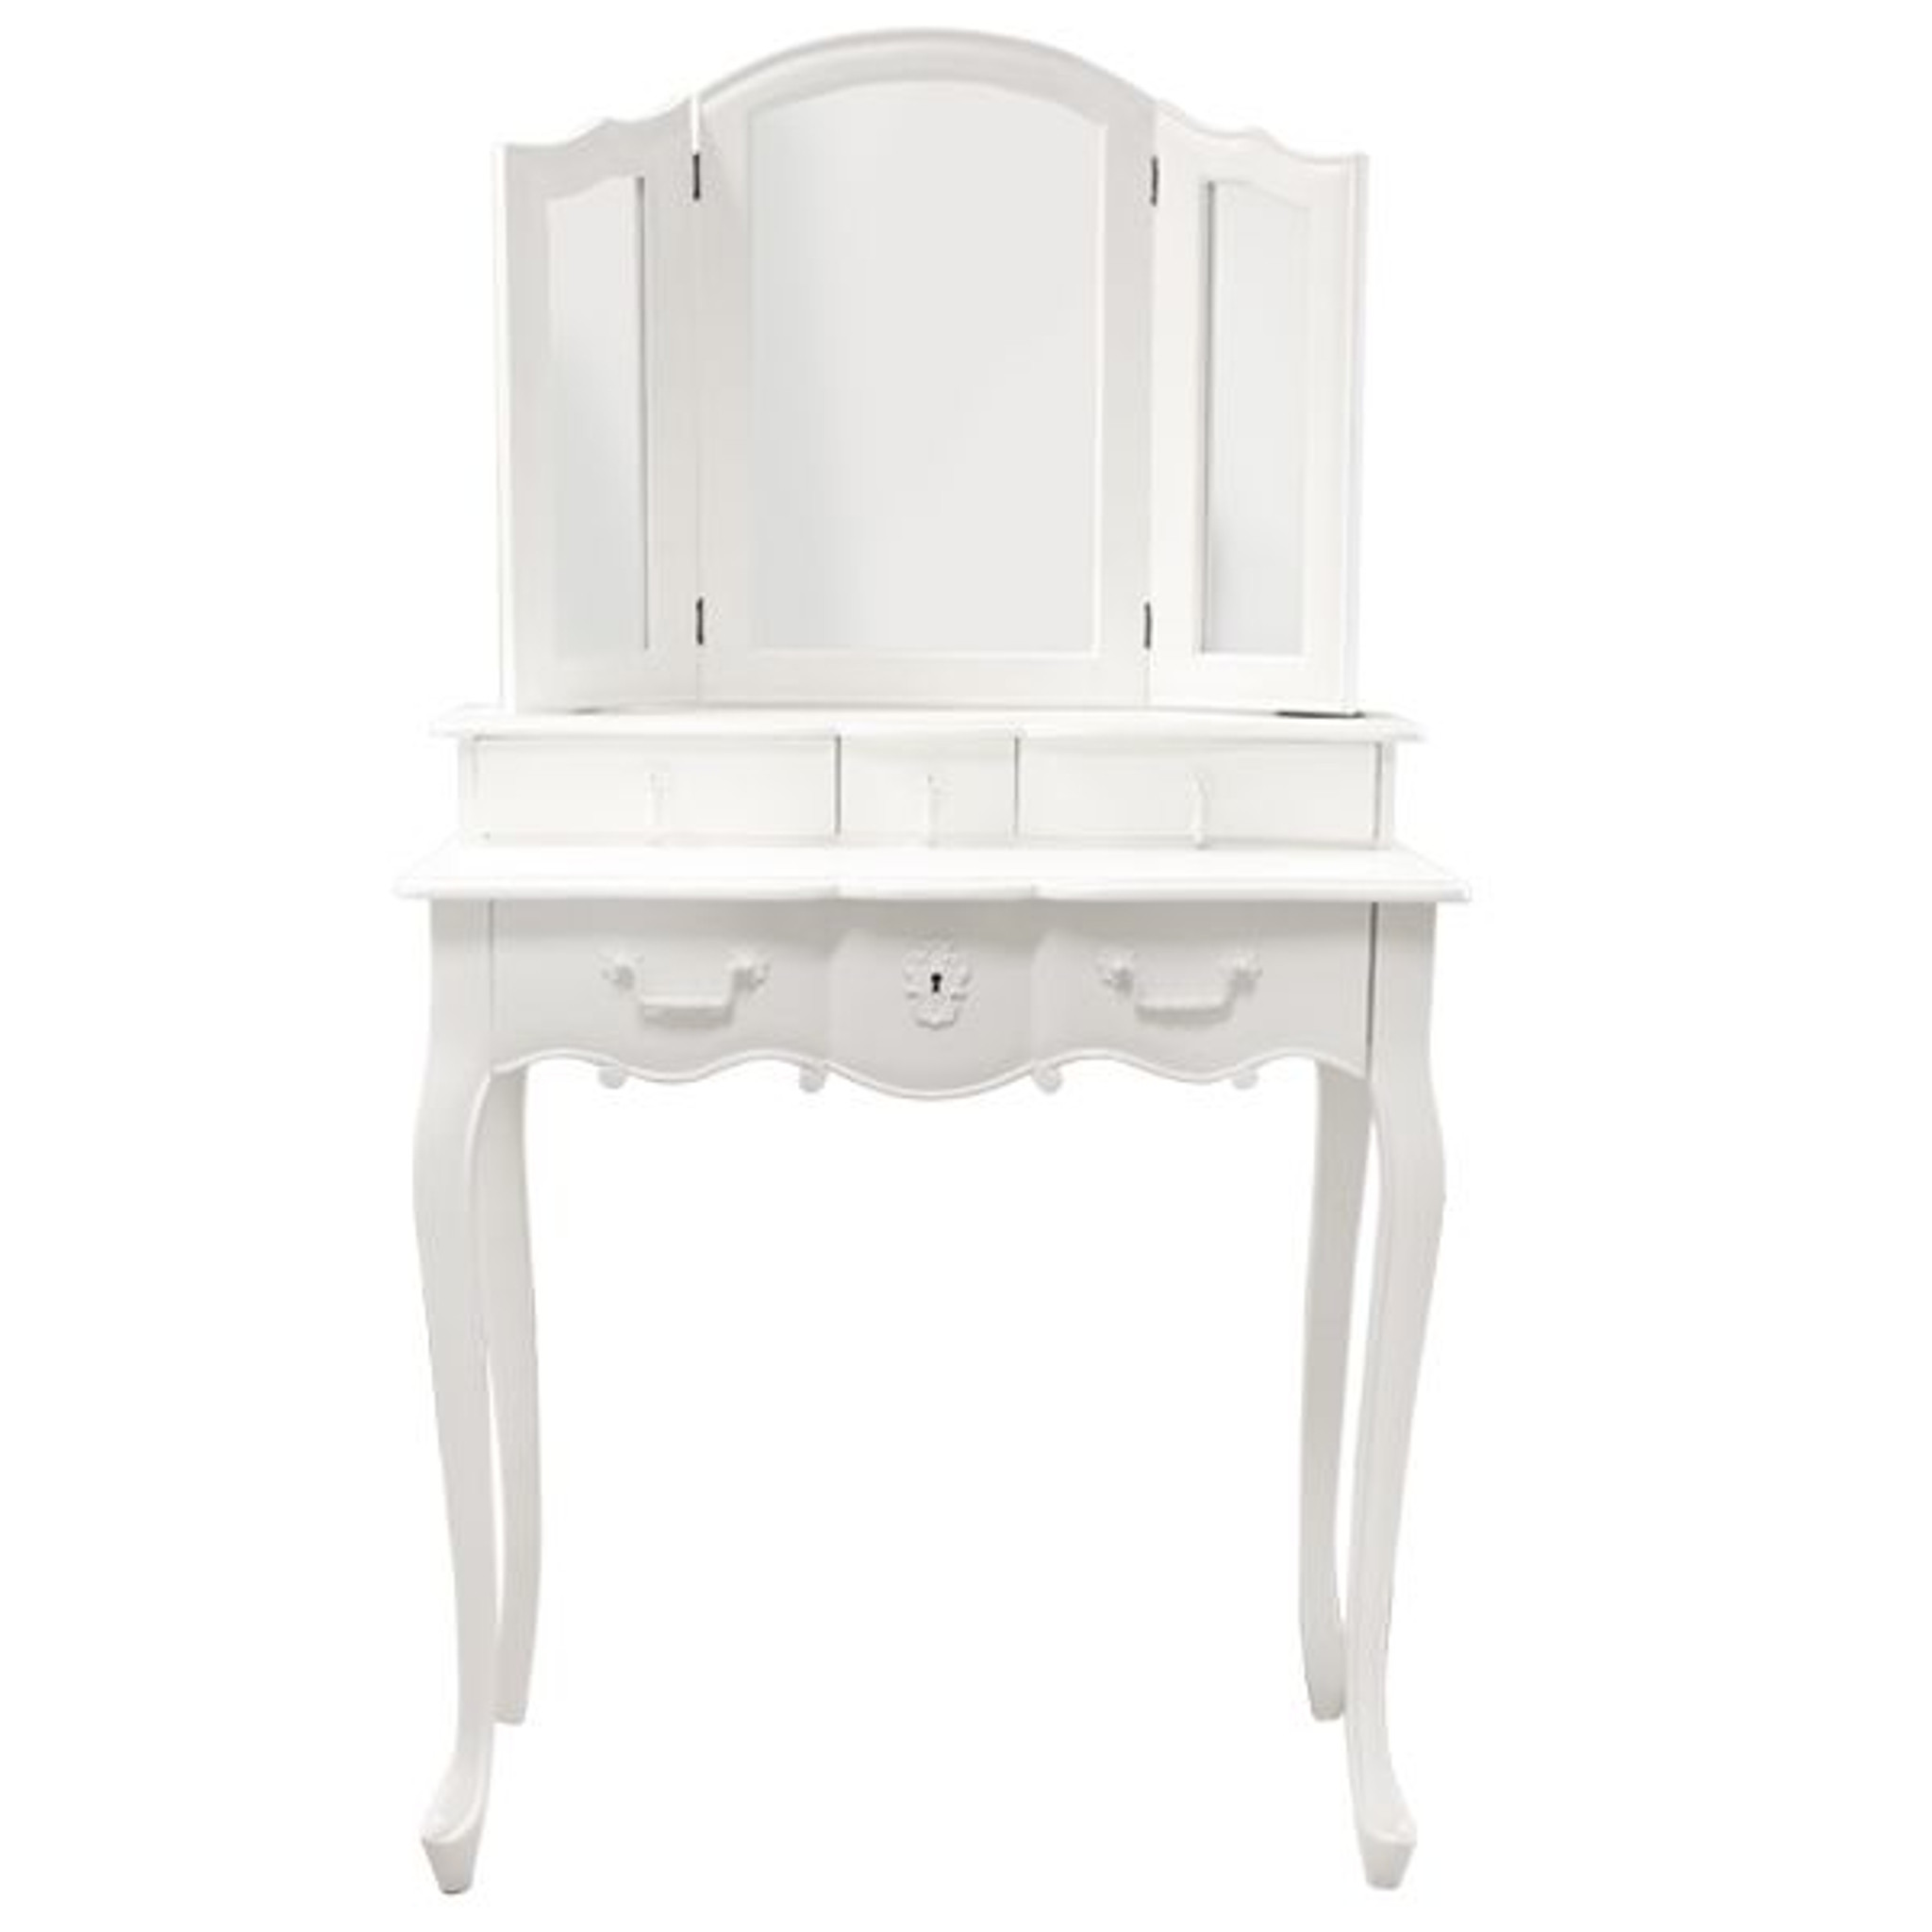 ambiance dressing table queen anne furniture. Black Bedroom Furniture Sets. Home Design Ideas